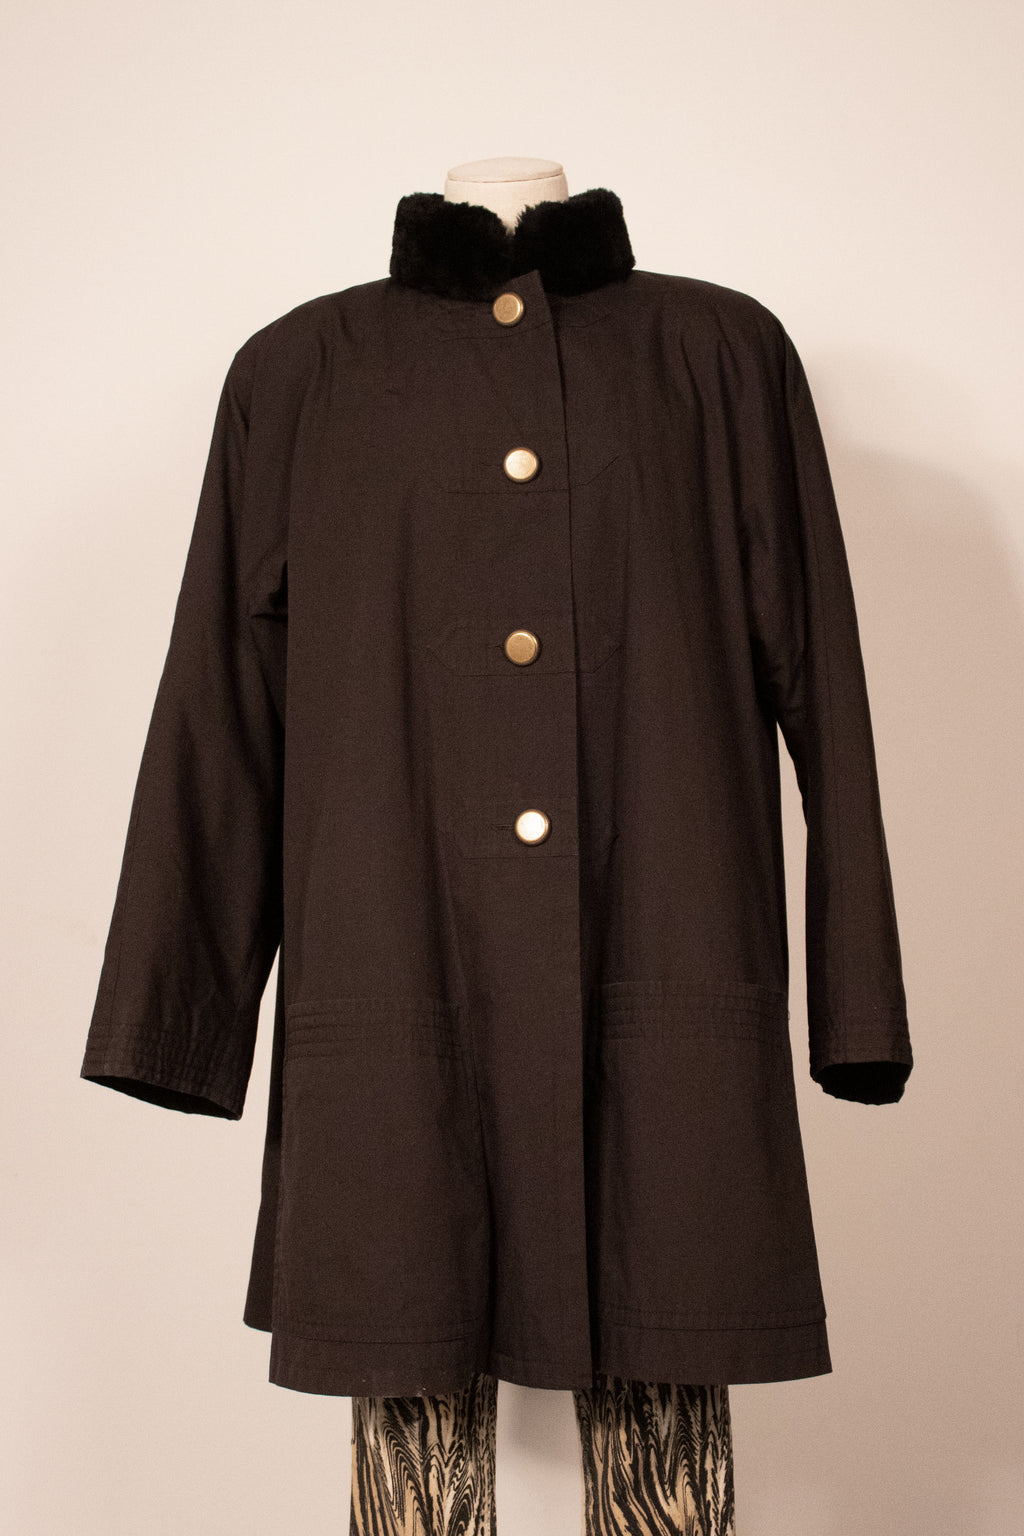 YSL black Asian ispired fur lined coat